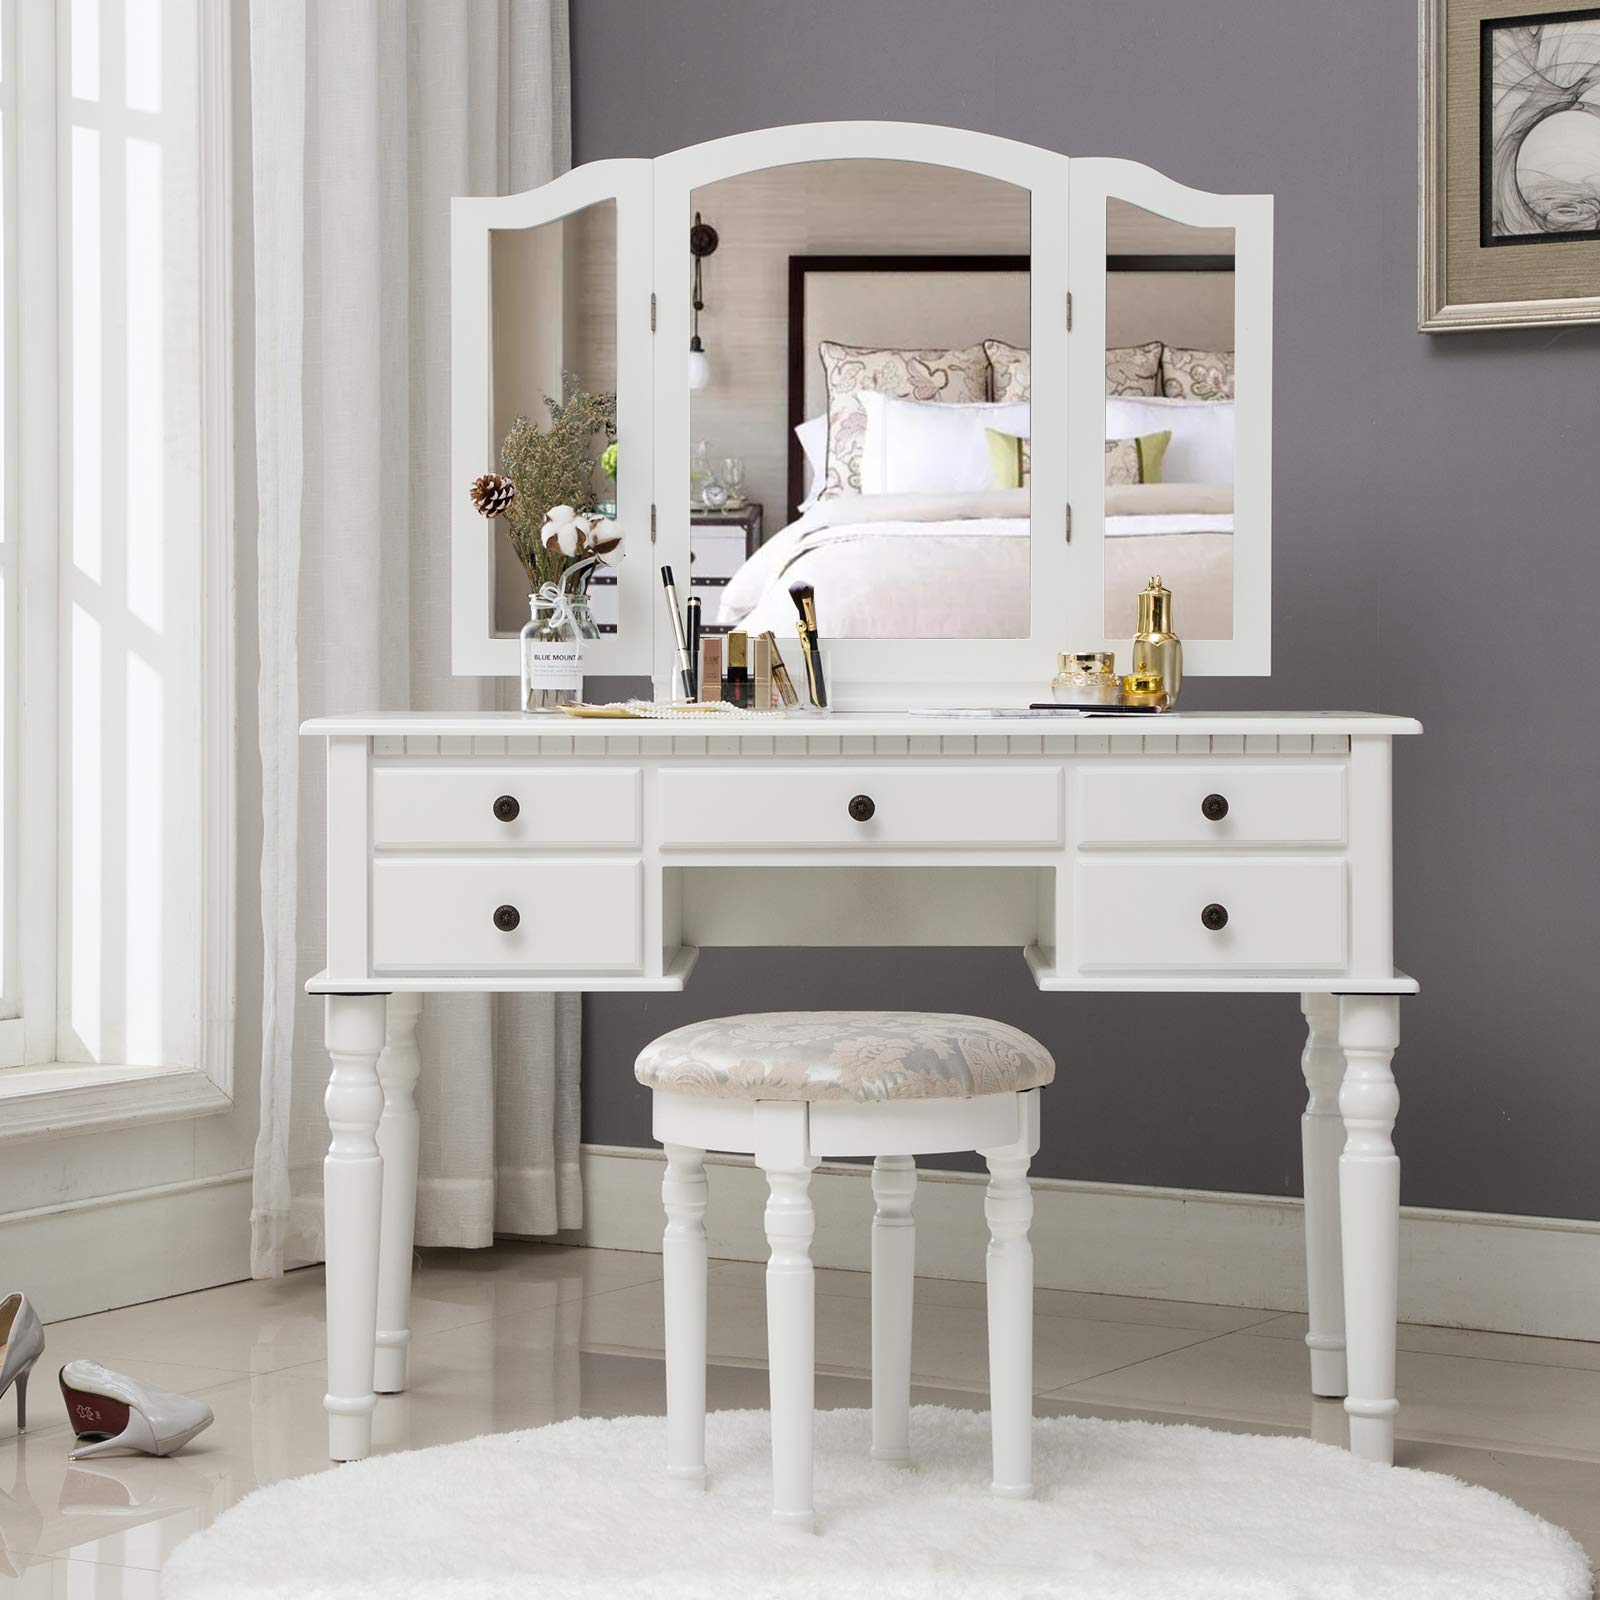 Unihome Makeup Vanity Table with Tri-Folding Mirror Dressing Table White Makeup Desk Vanity Table with Drawer Adult Makeup Table for Women